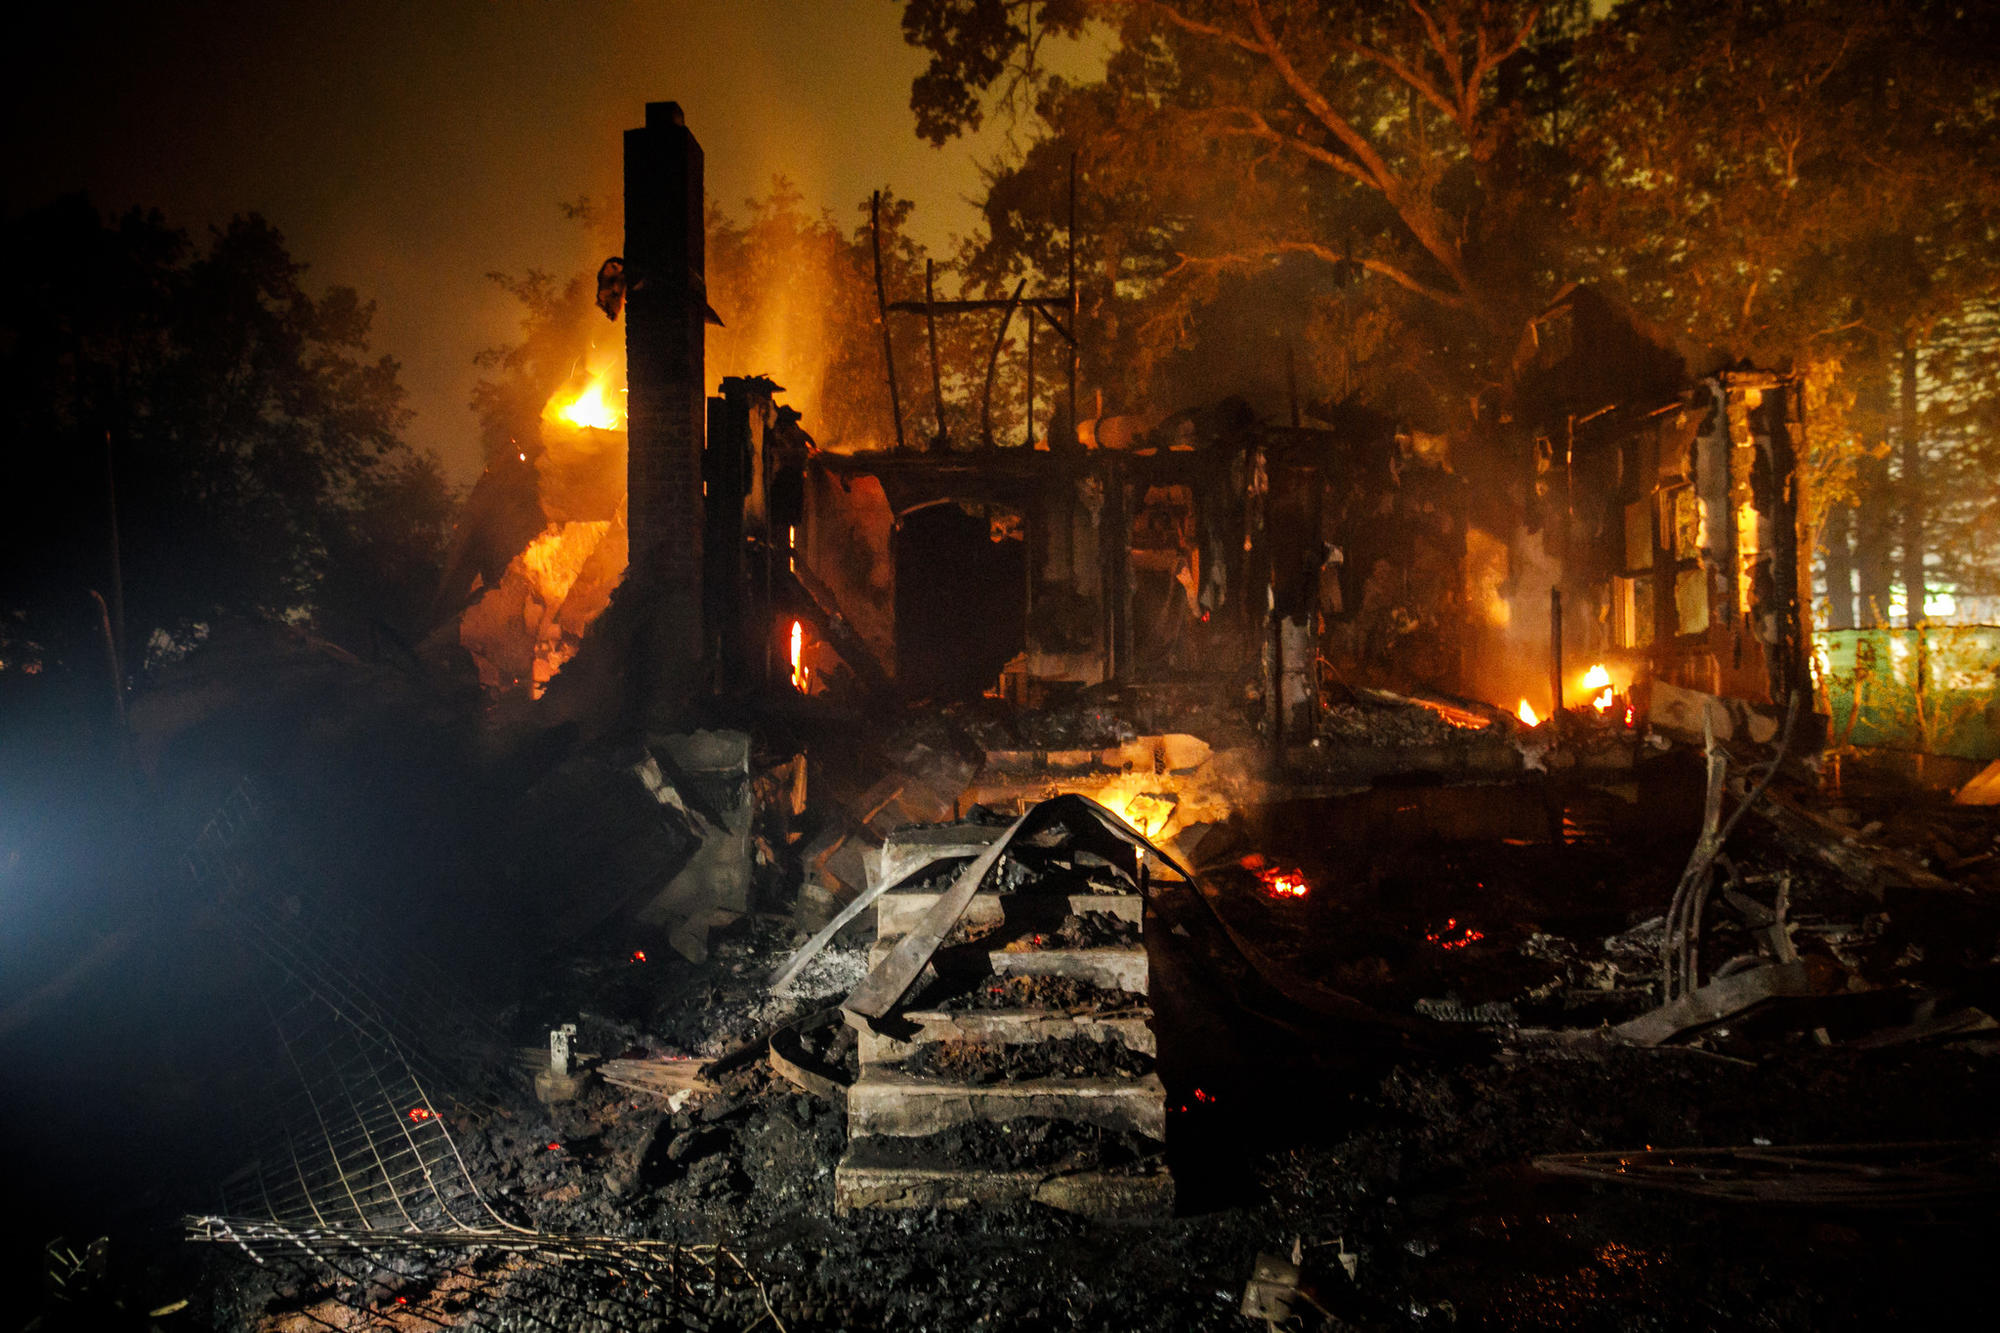 A home destroyed in the fast-moving wildfire that ripped through Glen Ellen in Sonoma County.